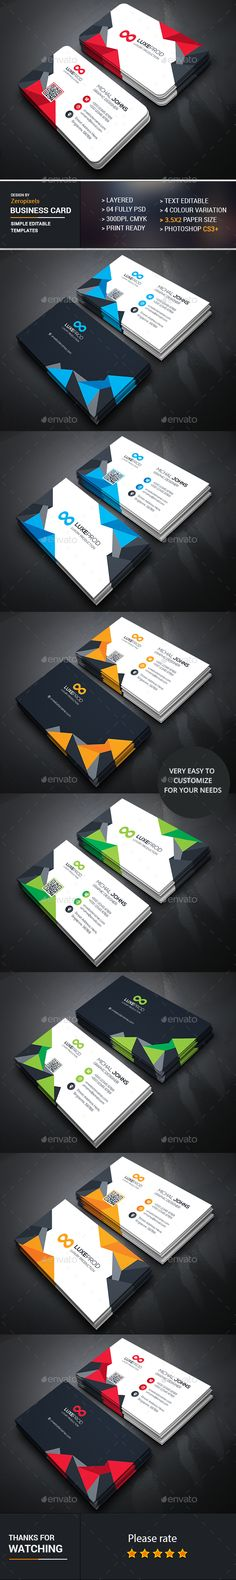 Corporate Business Card Bundle - Business Cards Print Templates Download here : http://graphicriver.net/item/corporate-business-card-bundle/16825578?s_rank=53&ref=Al-fatih